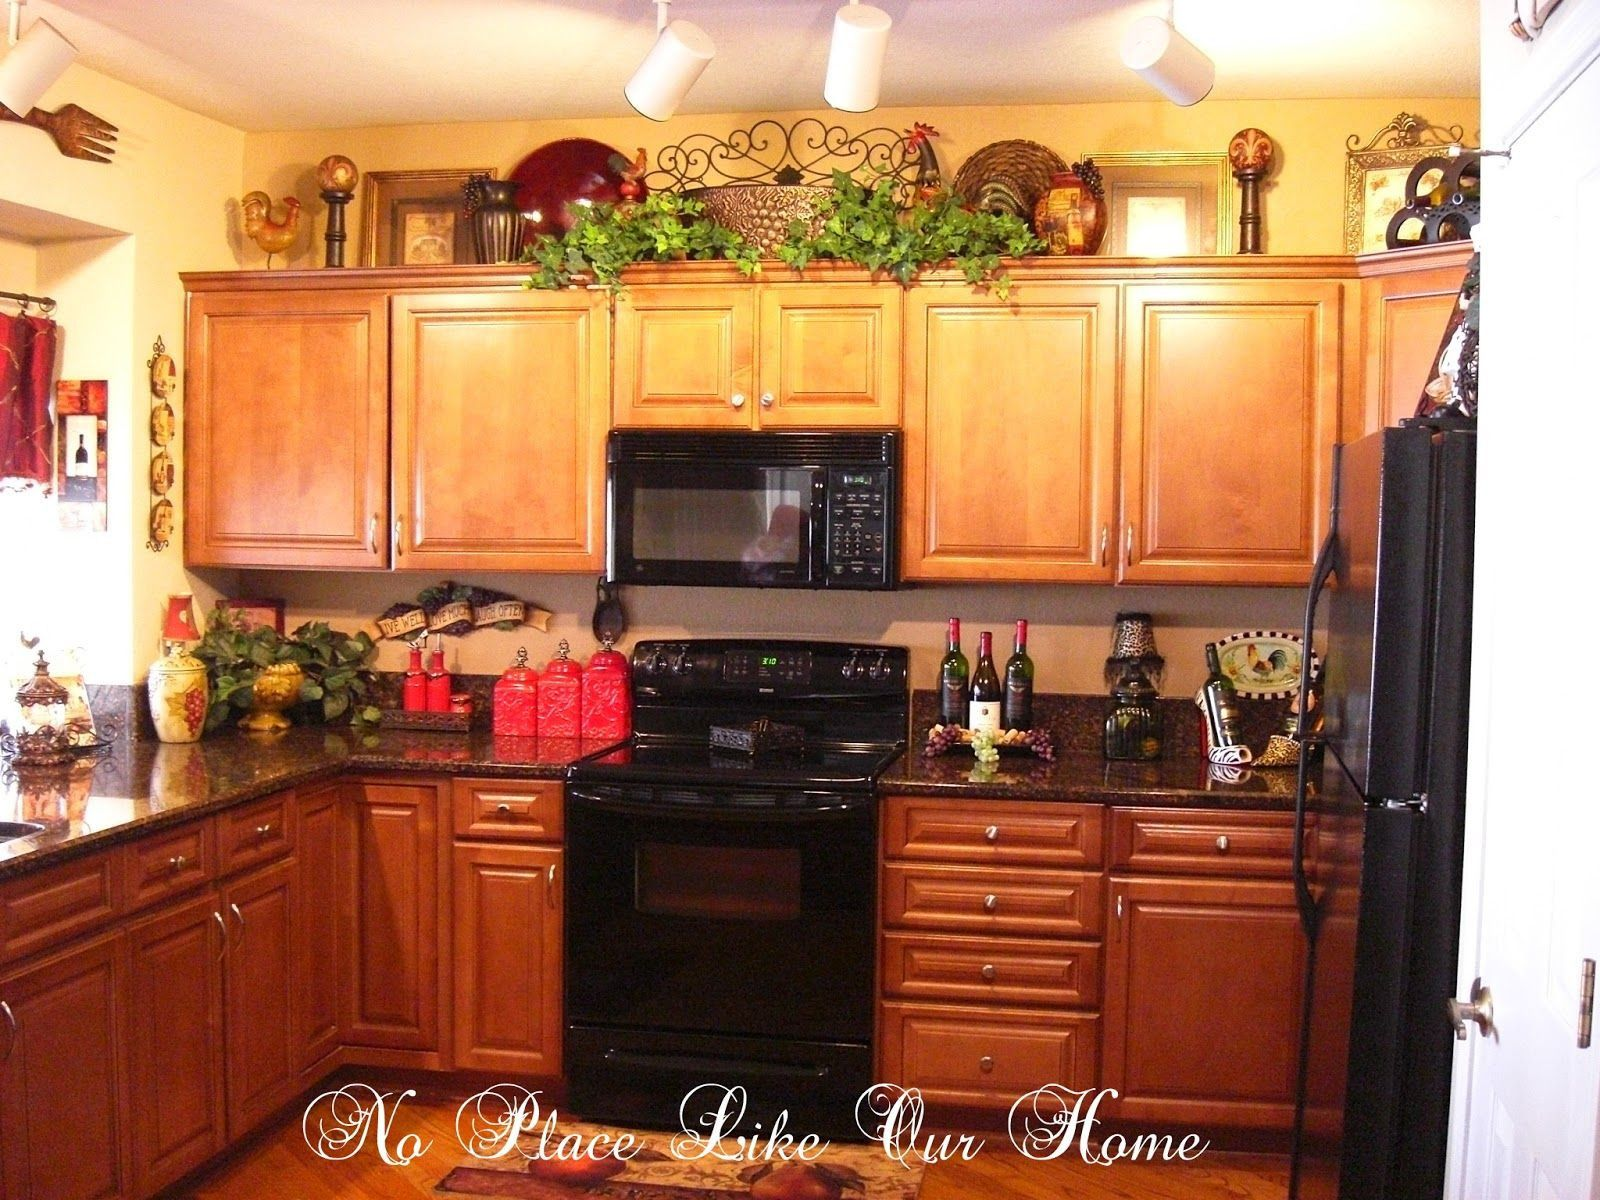 50+ top Of Cabinet Decor - Kitchen Cabinet Inserts Ideas Check more ...